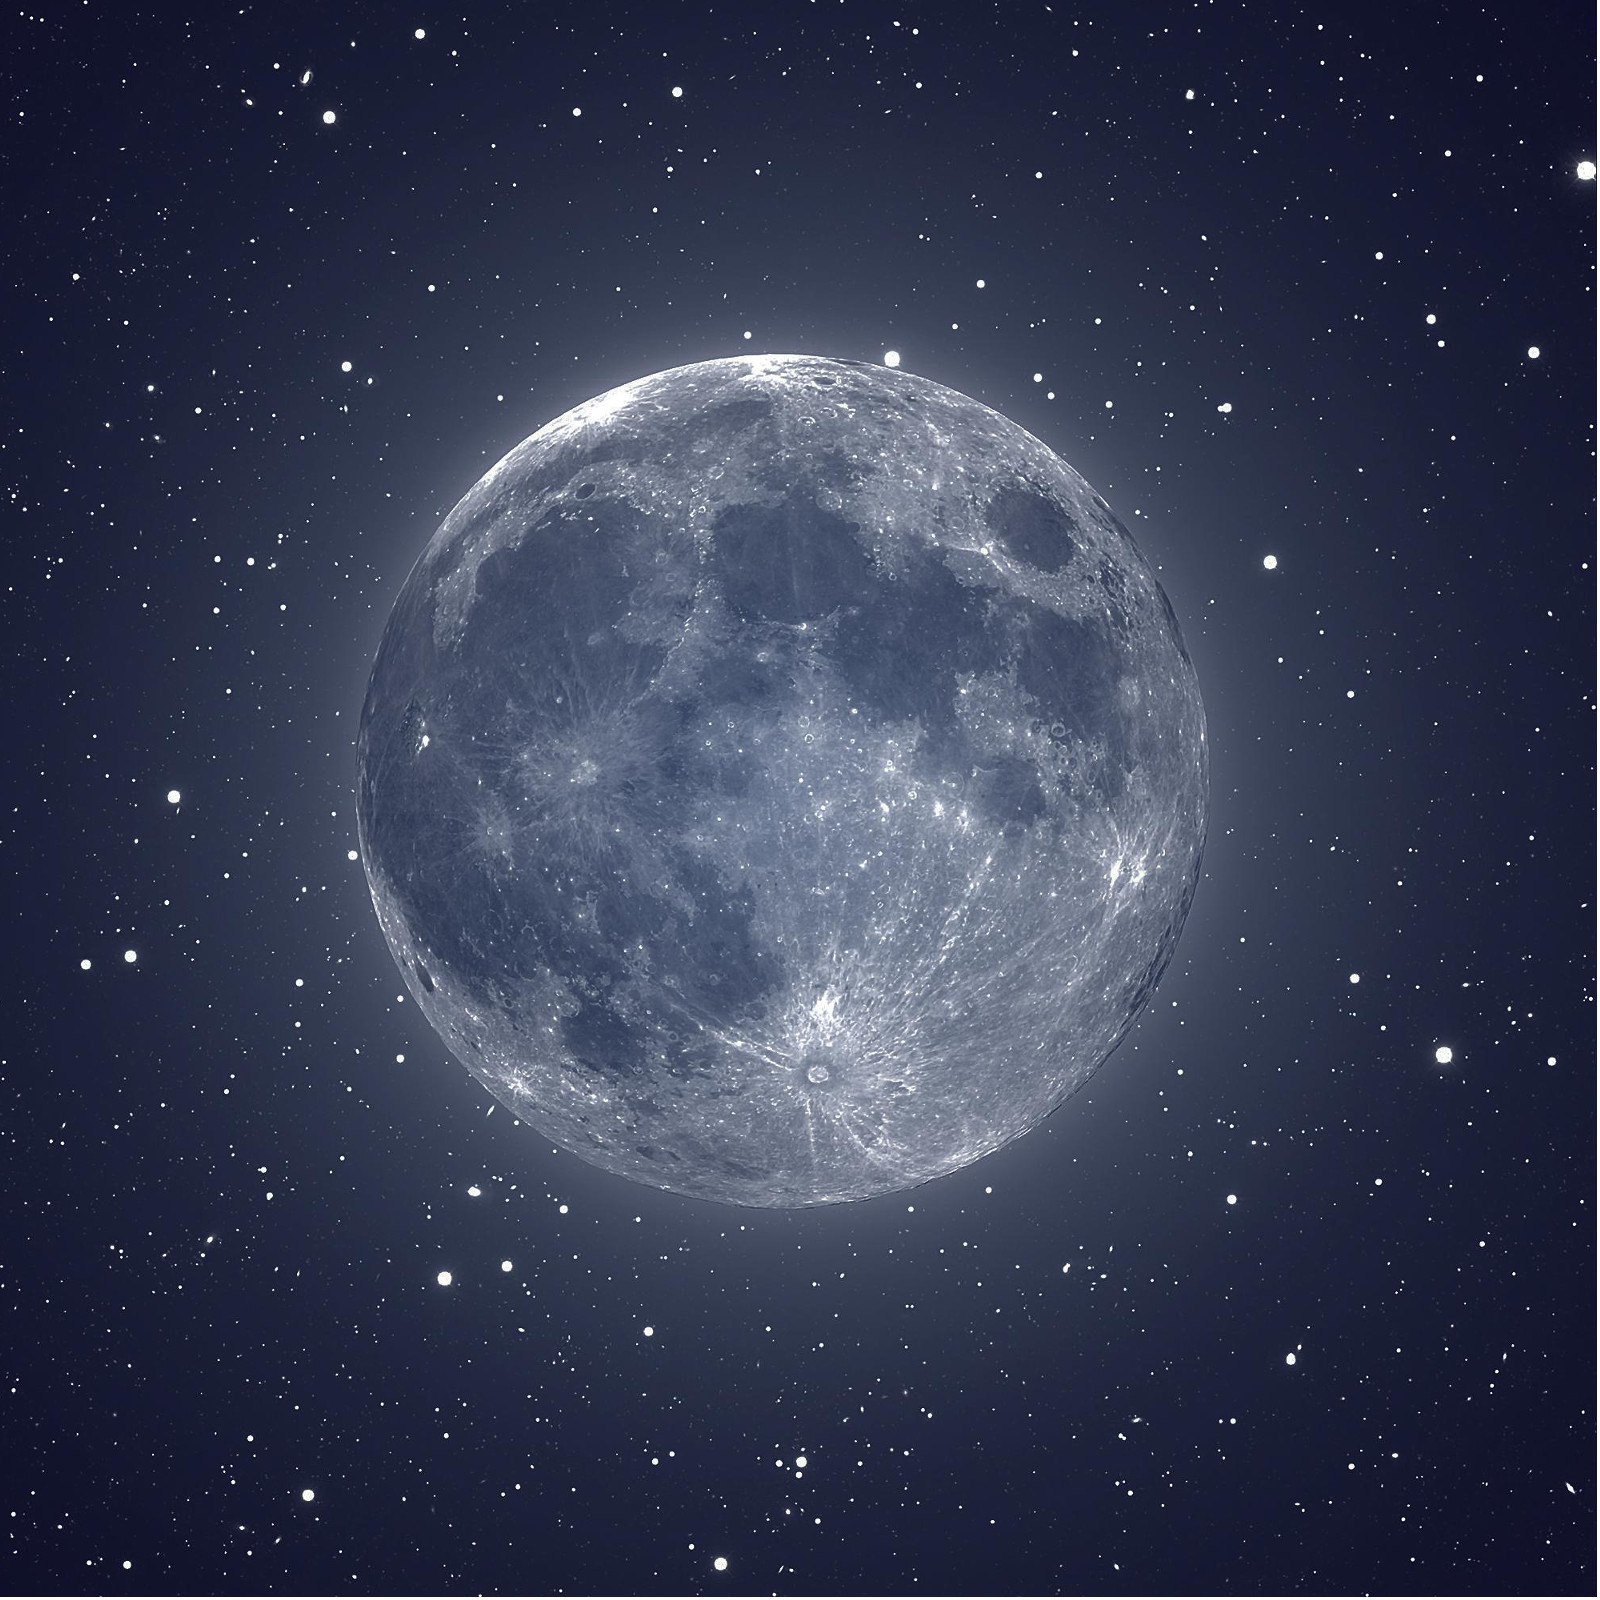 Our Remarkable Moon